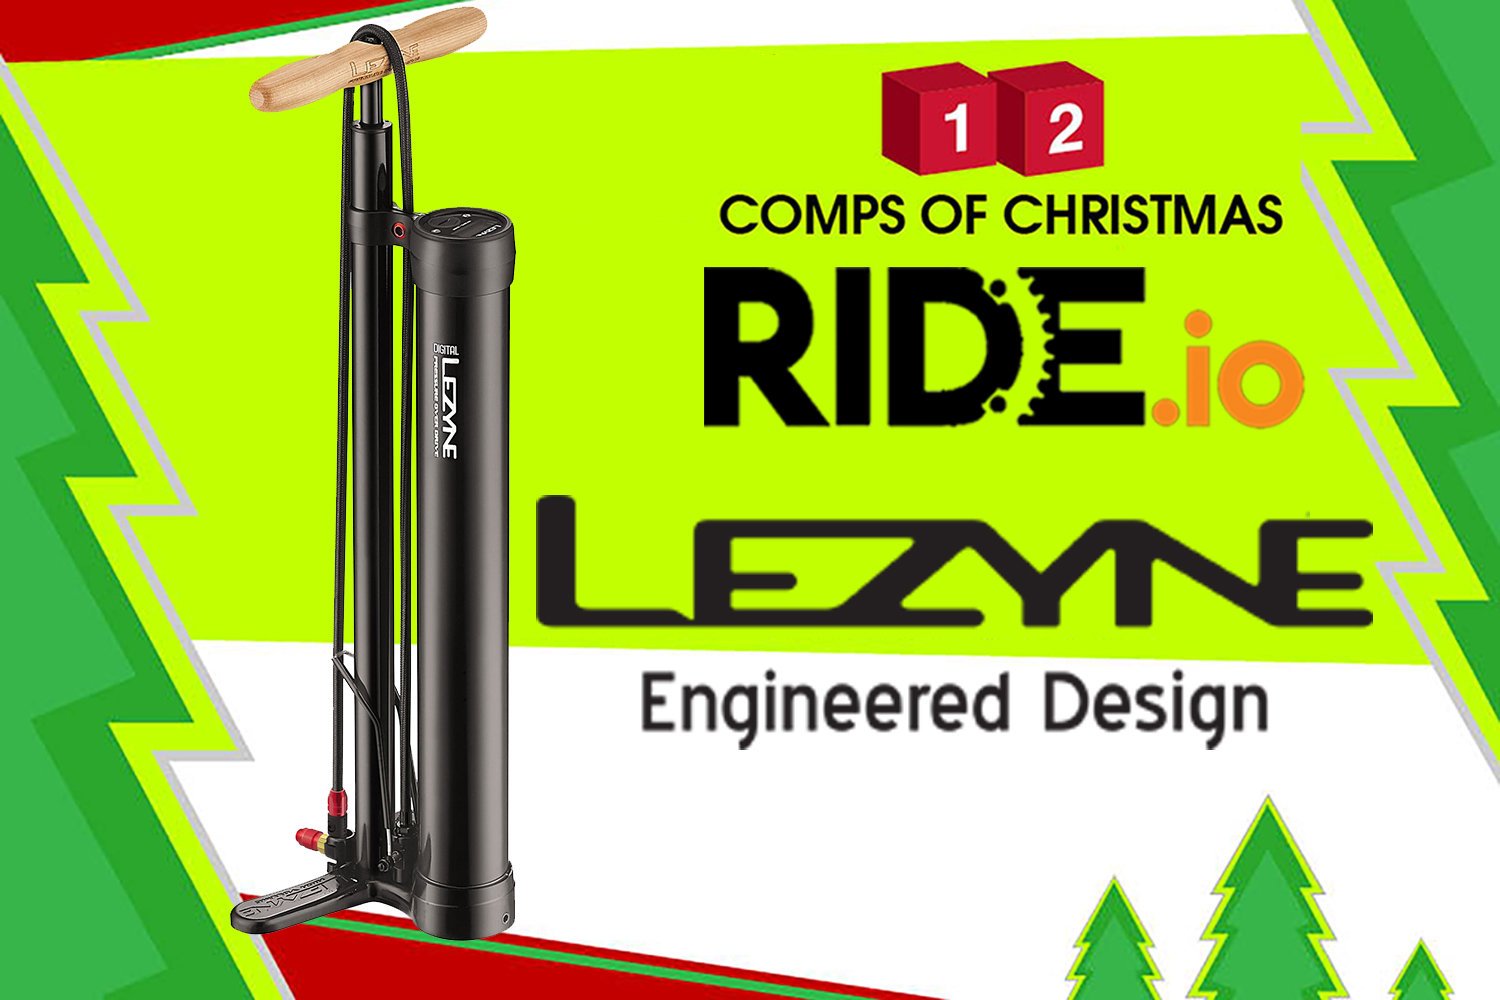 12 comps feature Lezyne